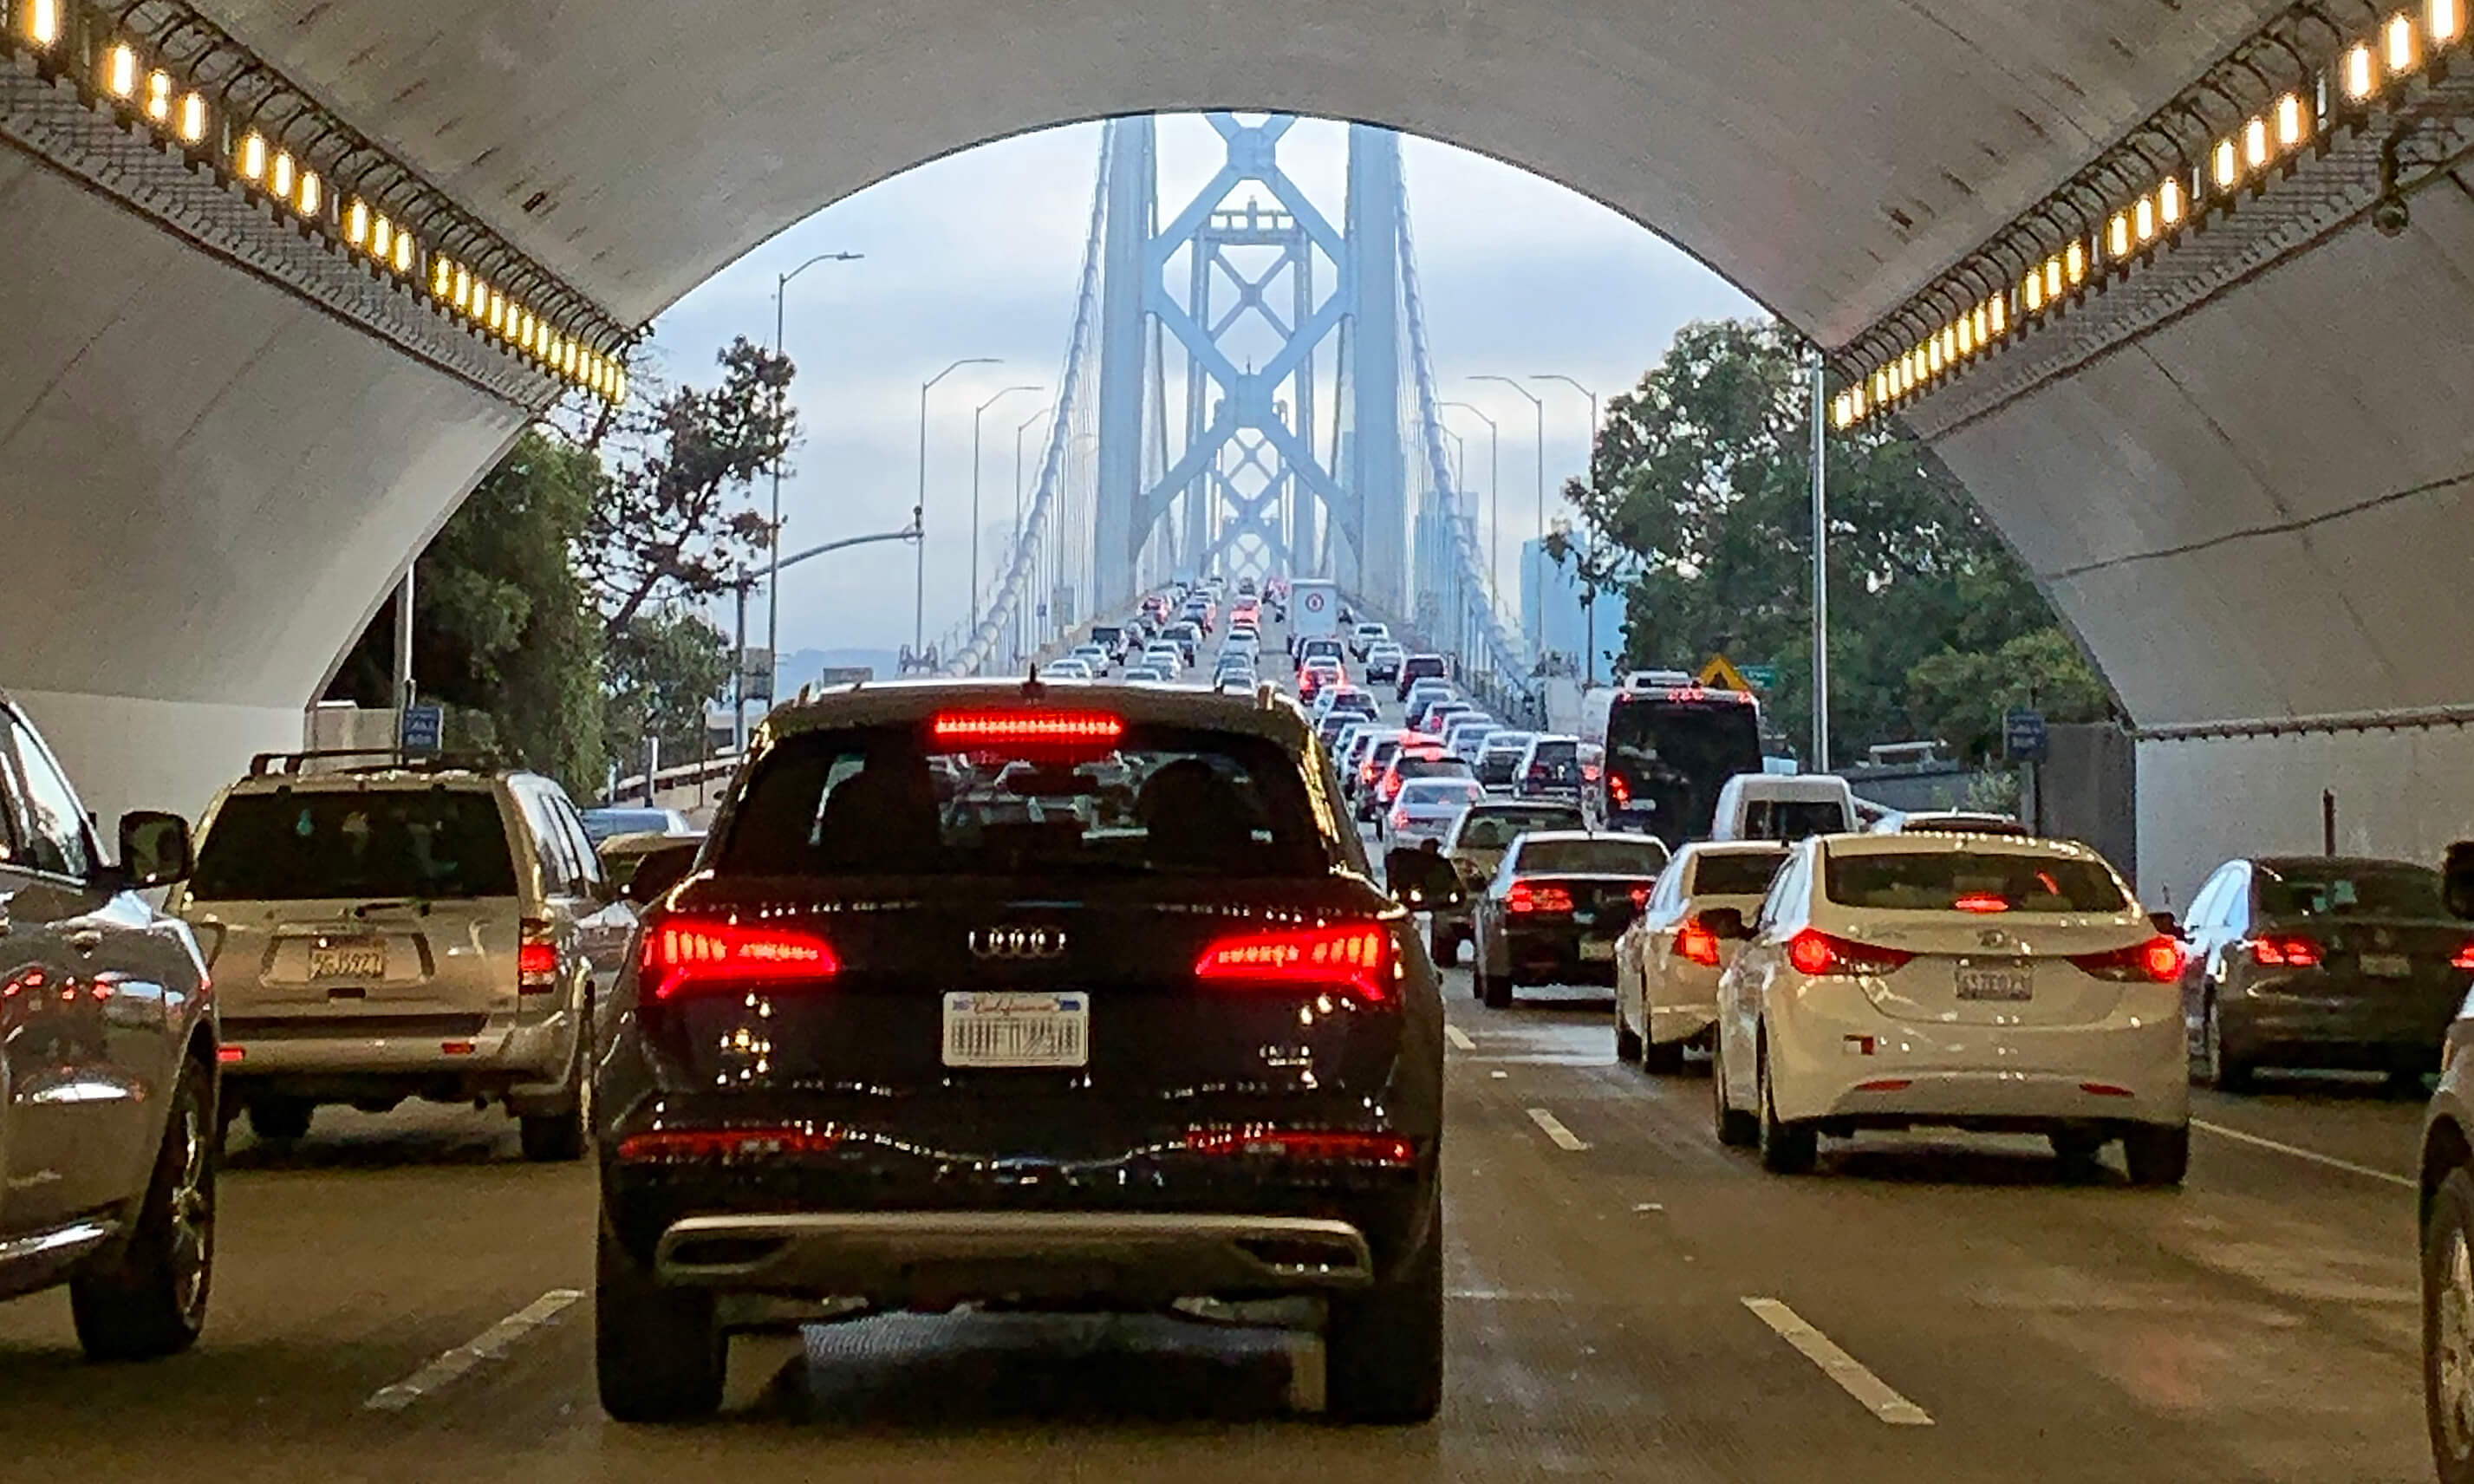 Driving through the Treasure Island tunnel on the Bay Bridge